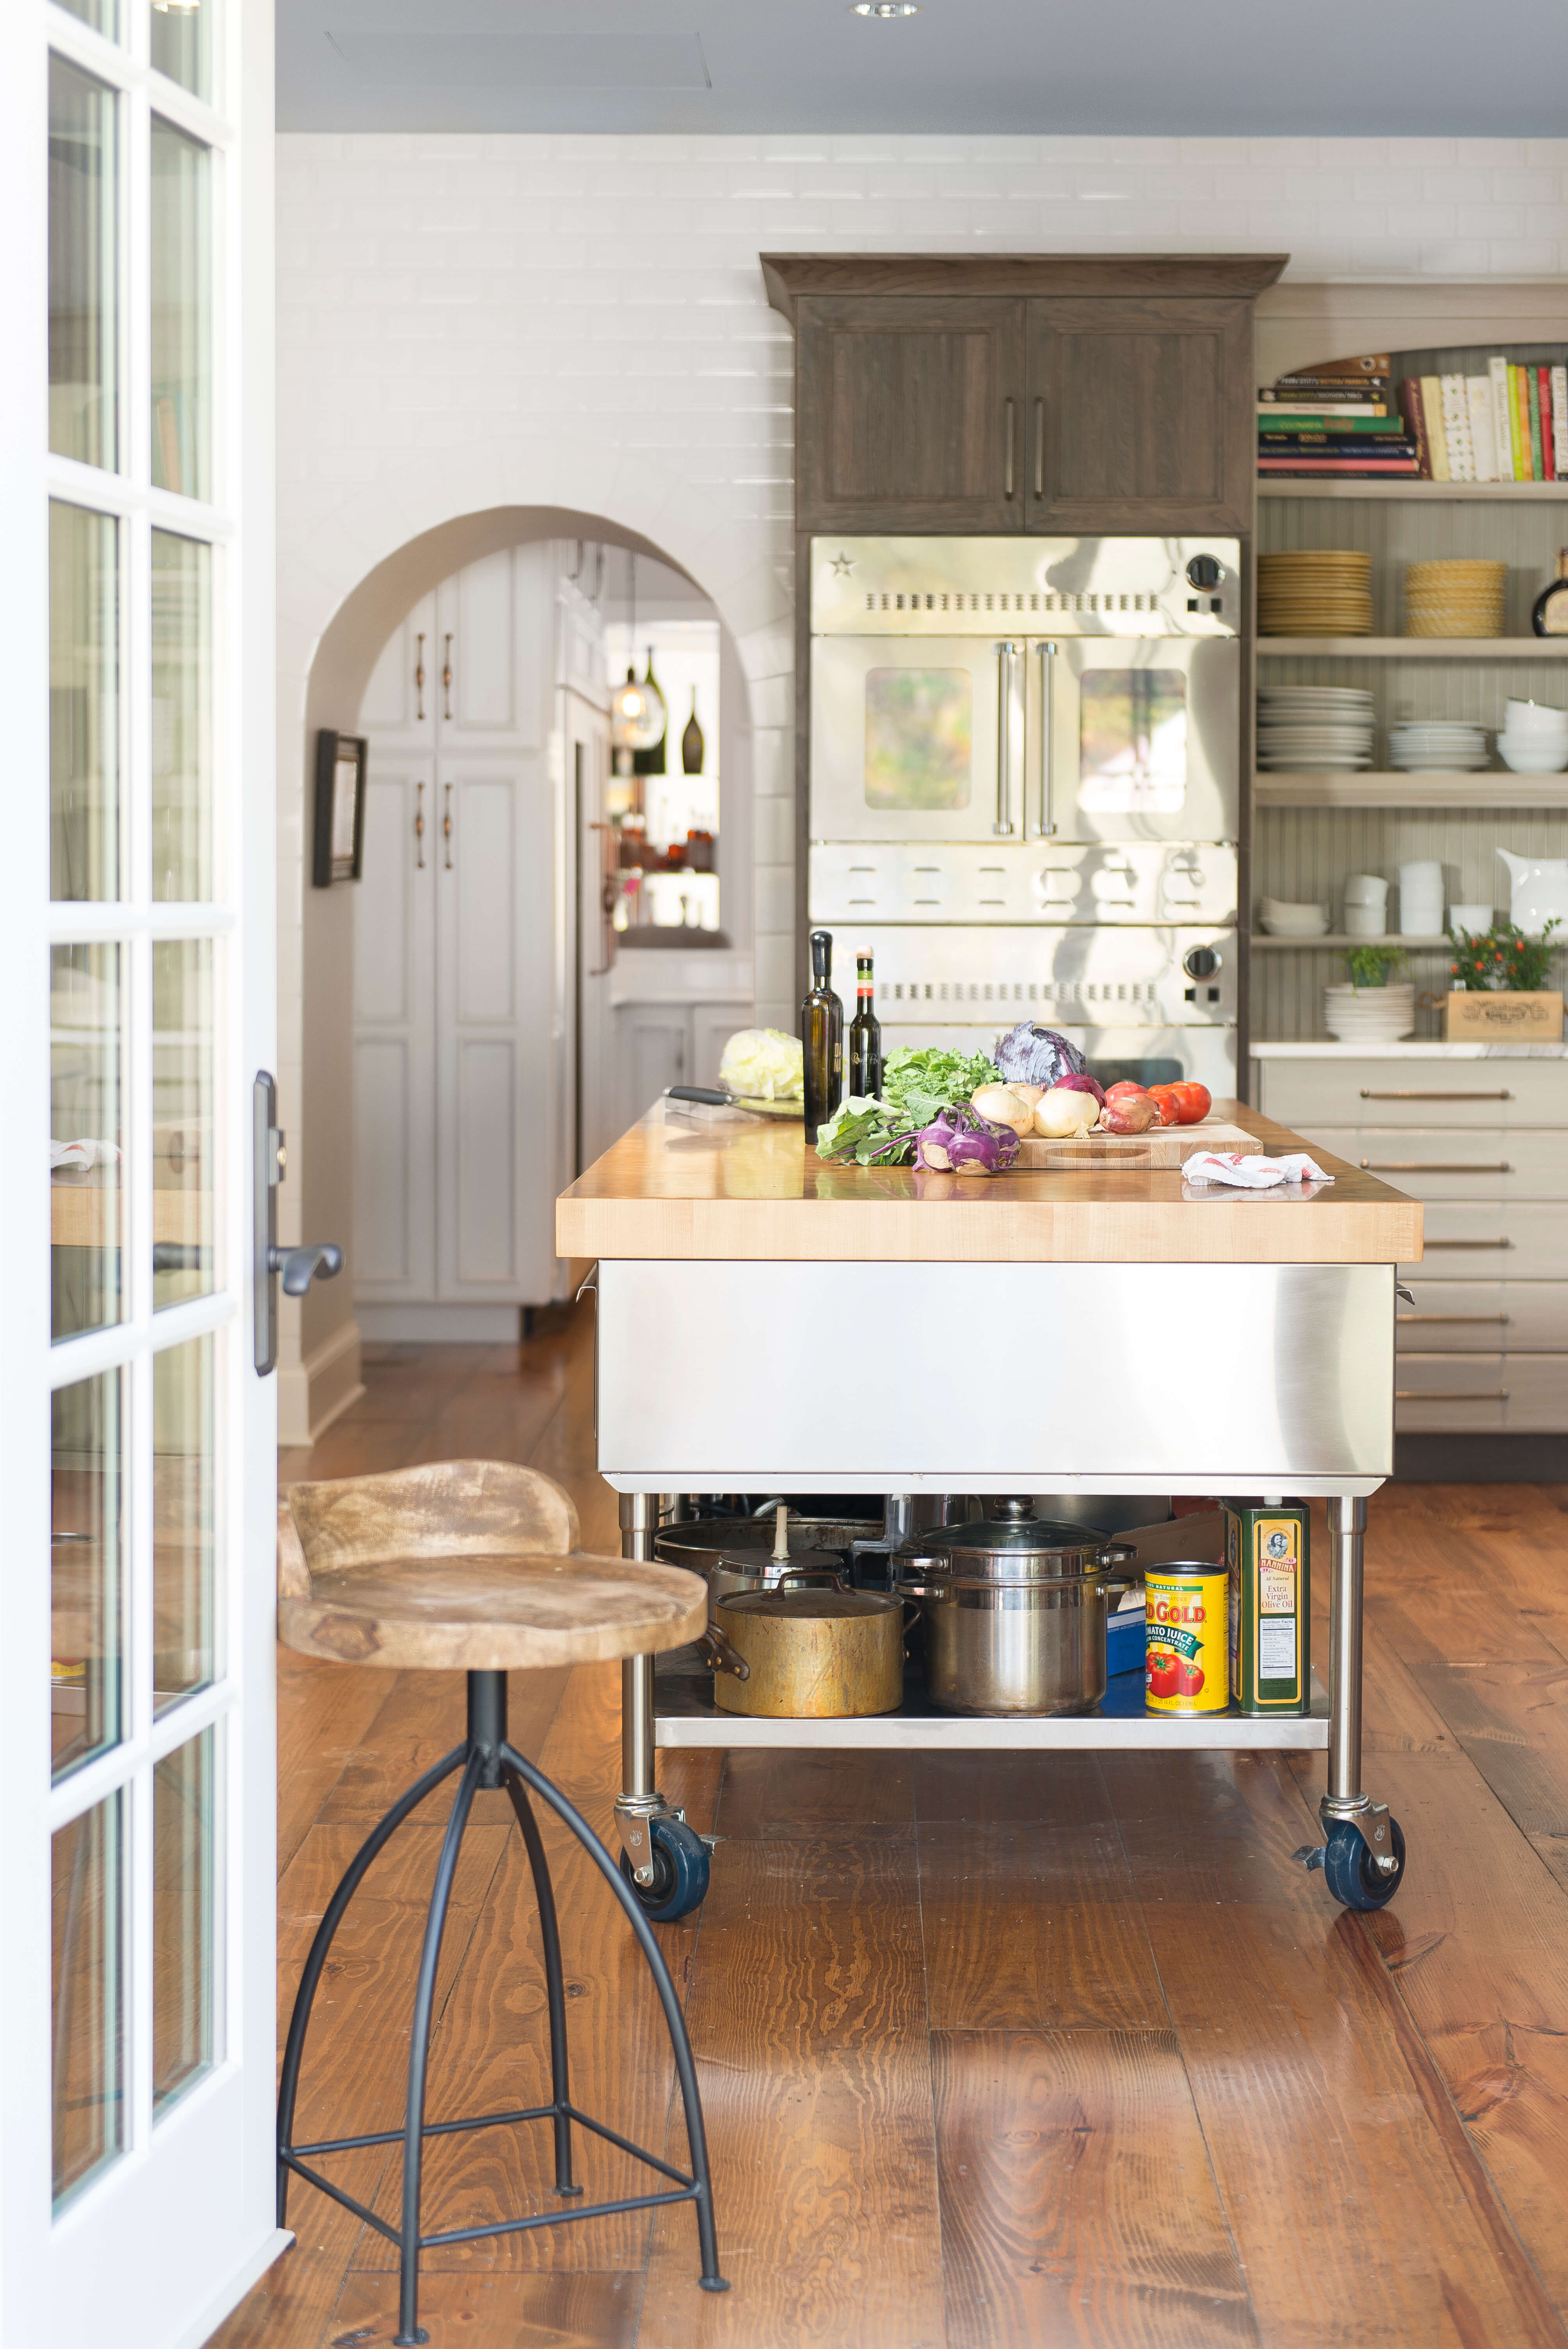 The garage door was replaced with French doors leading to the outdoor kitchen space.